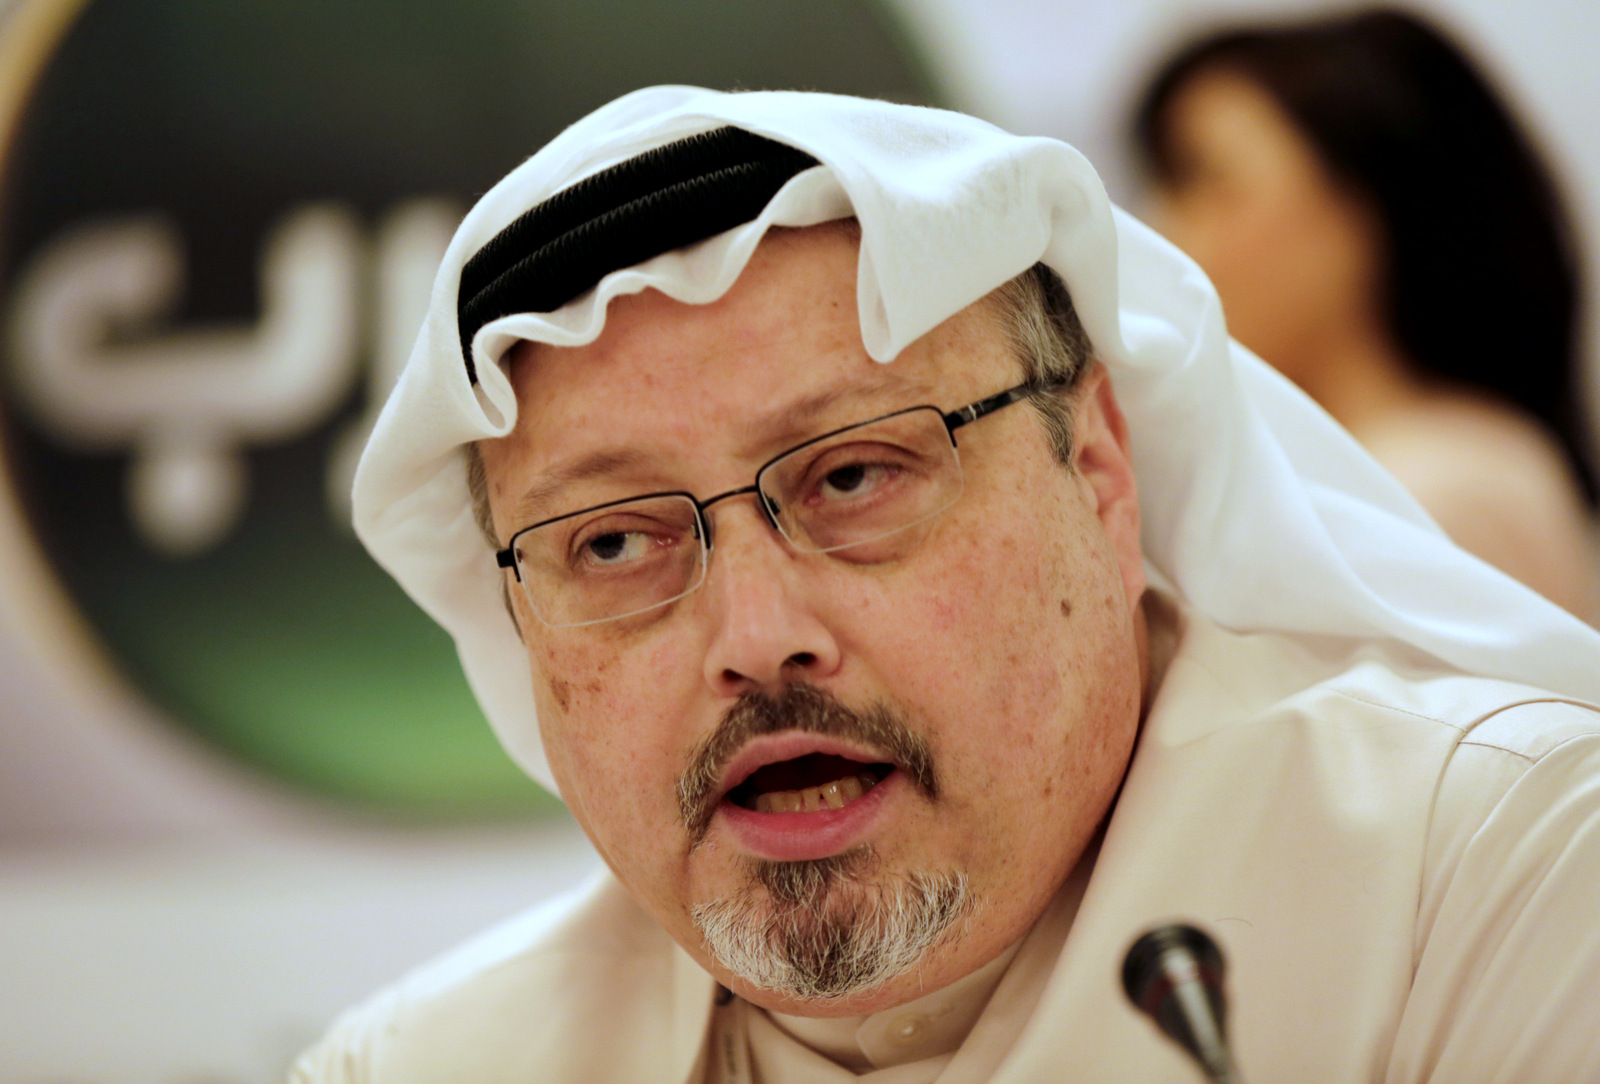 Jamal Khashoggi speaks during a press conference in Manama, Bahrain, Monday, Dec. 15, 2014. Khashoggi was recently banned from reporting by the Saudi government over his public criticism of Donald Trump. (AP Photo/Hasan Jamali)